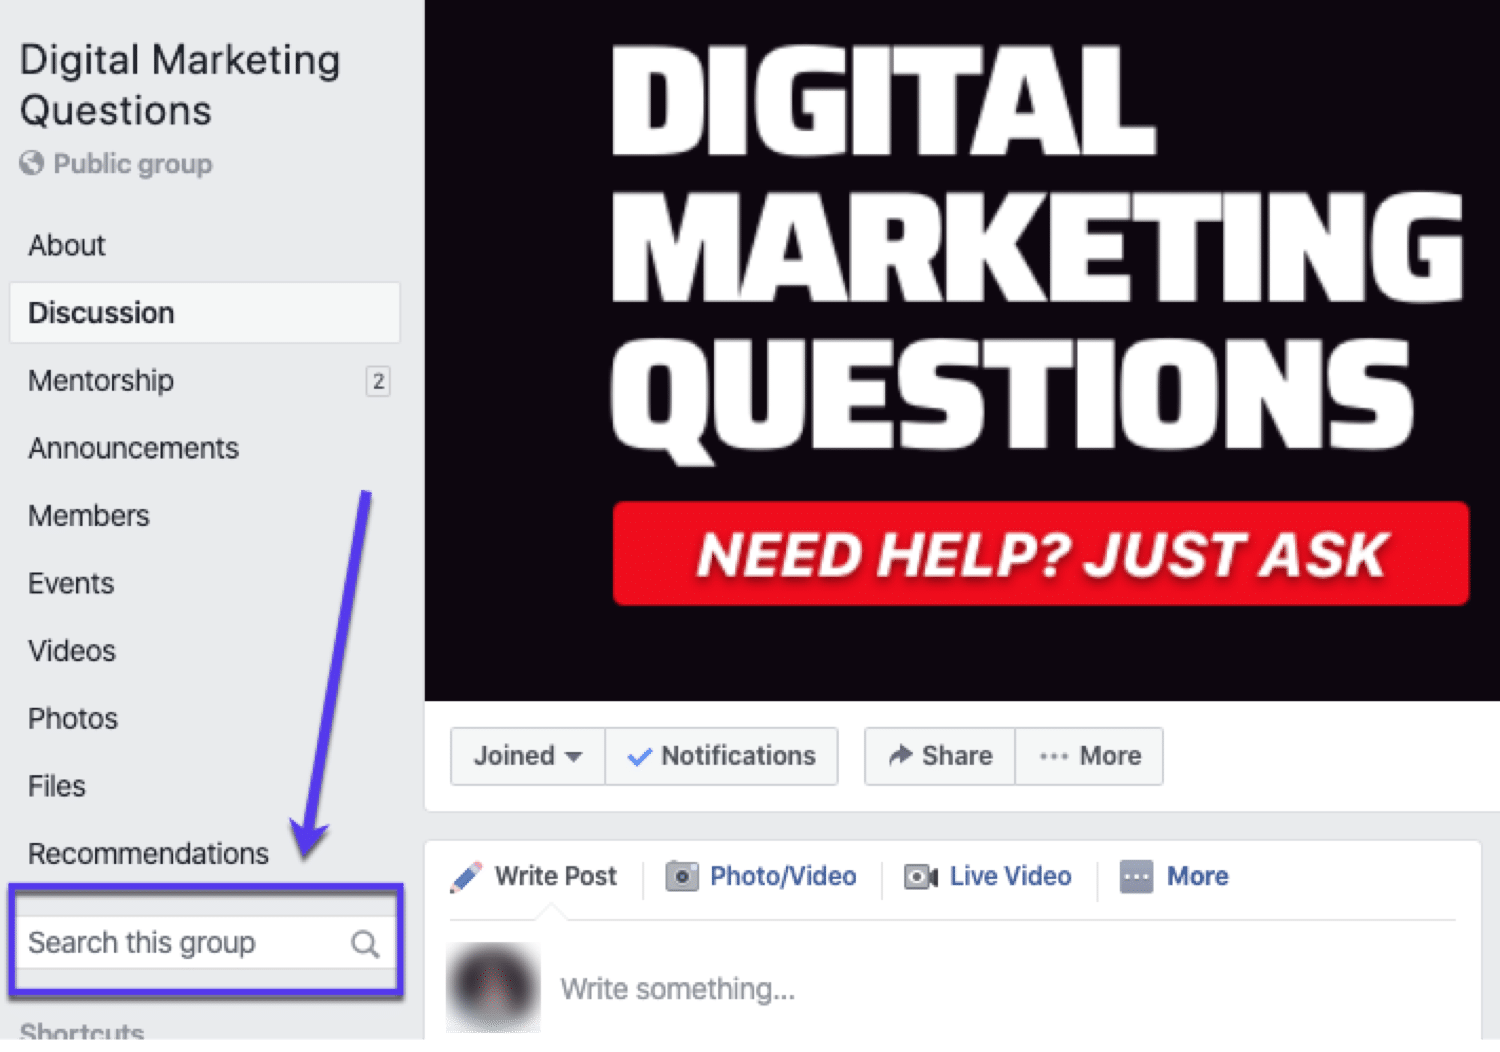 O Digital Marketing Questions é um grupo popular no Facebook